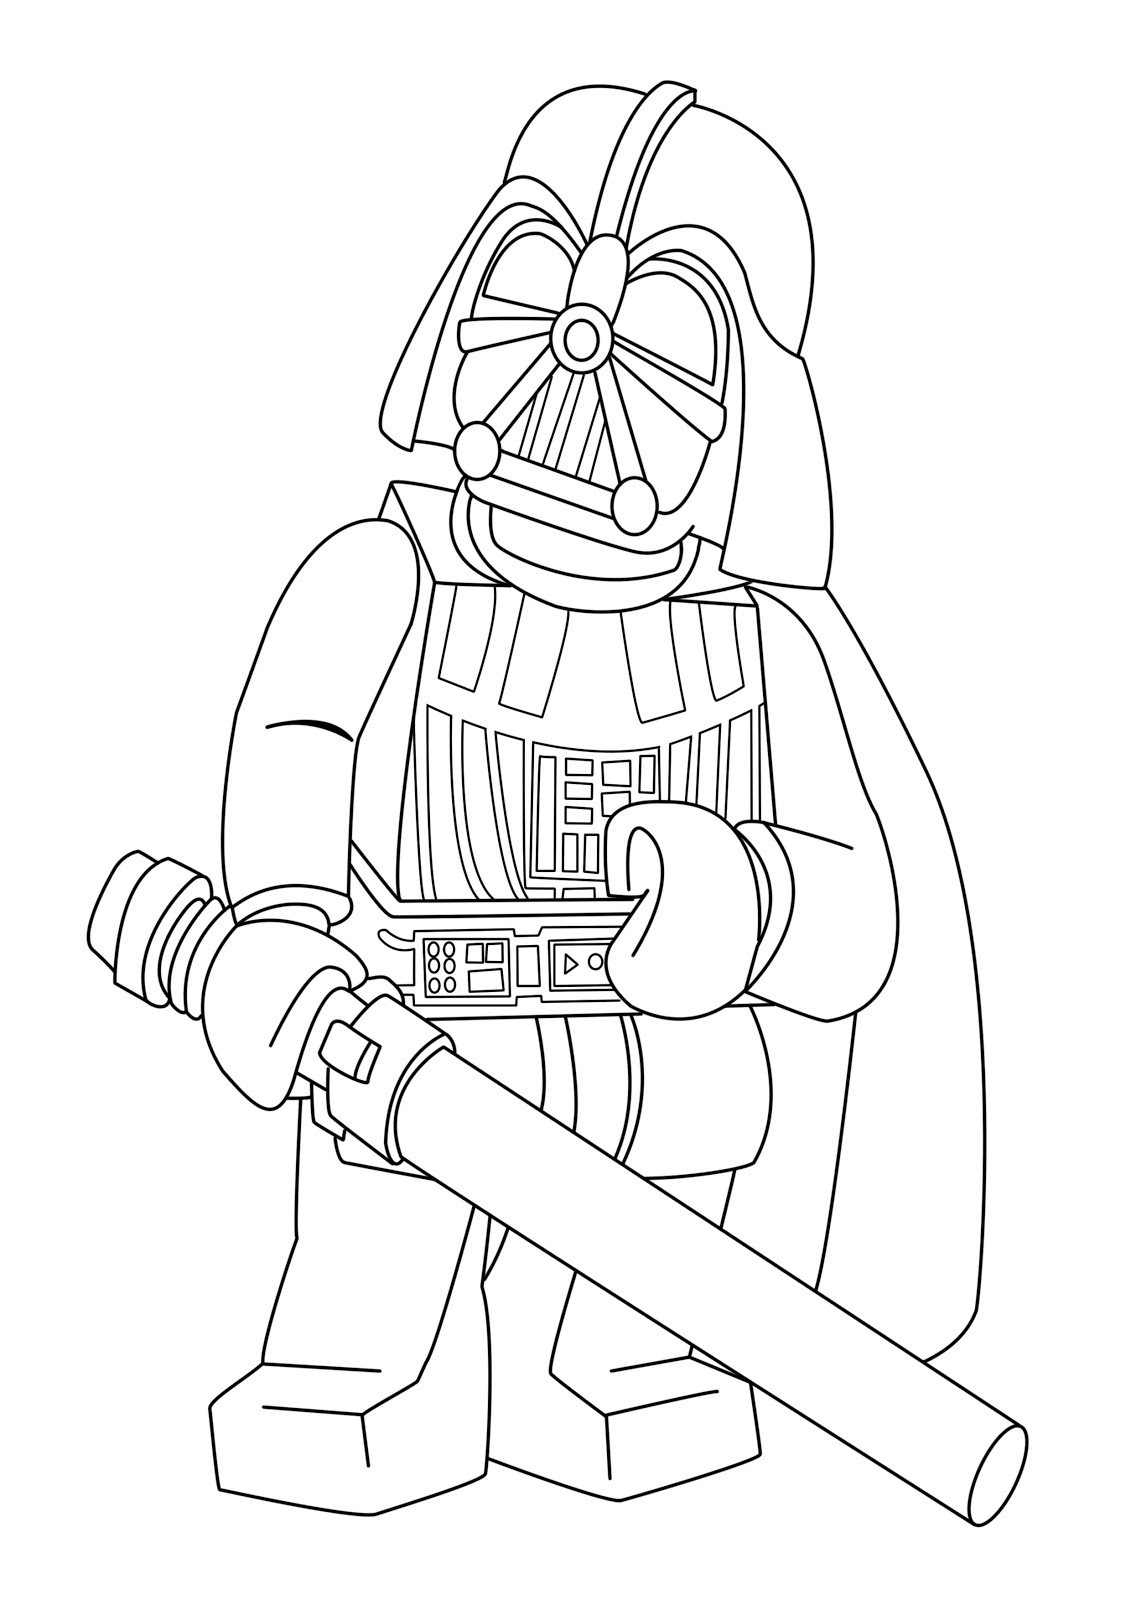 Pics Photos - Lego Star Wars Coloring Lego Star Wars R2d2 Coloring Pages